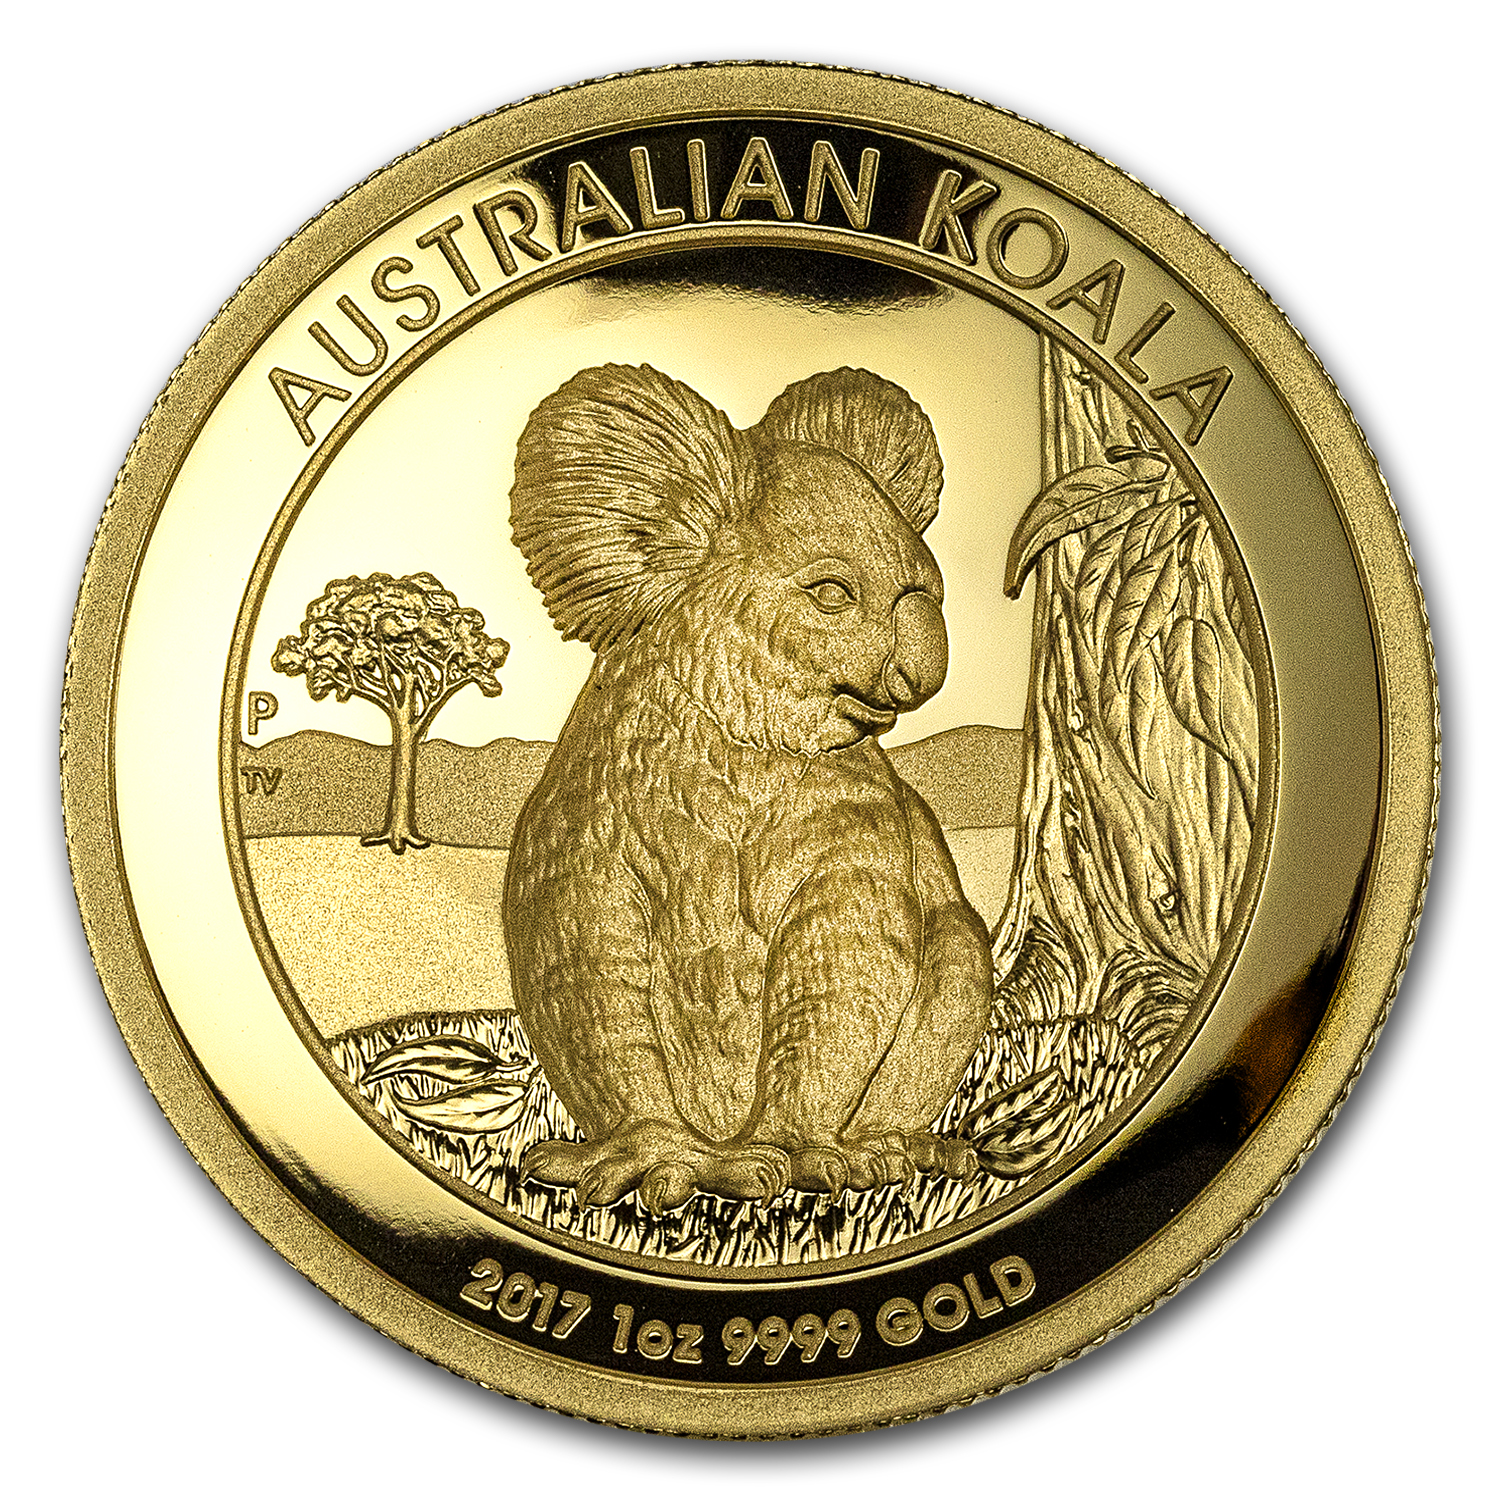 2017 Australia 1 oz Gold Koala Proof (High Relief, Box & COA)